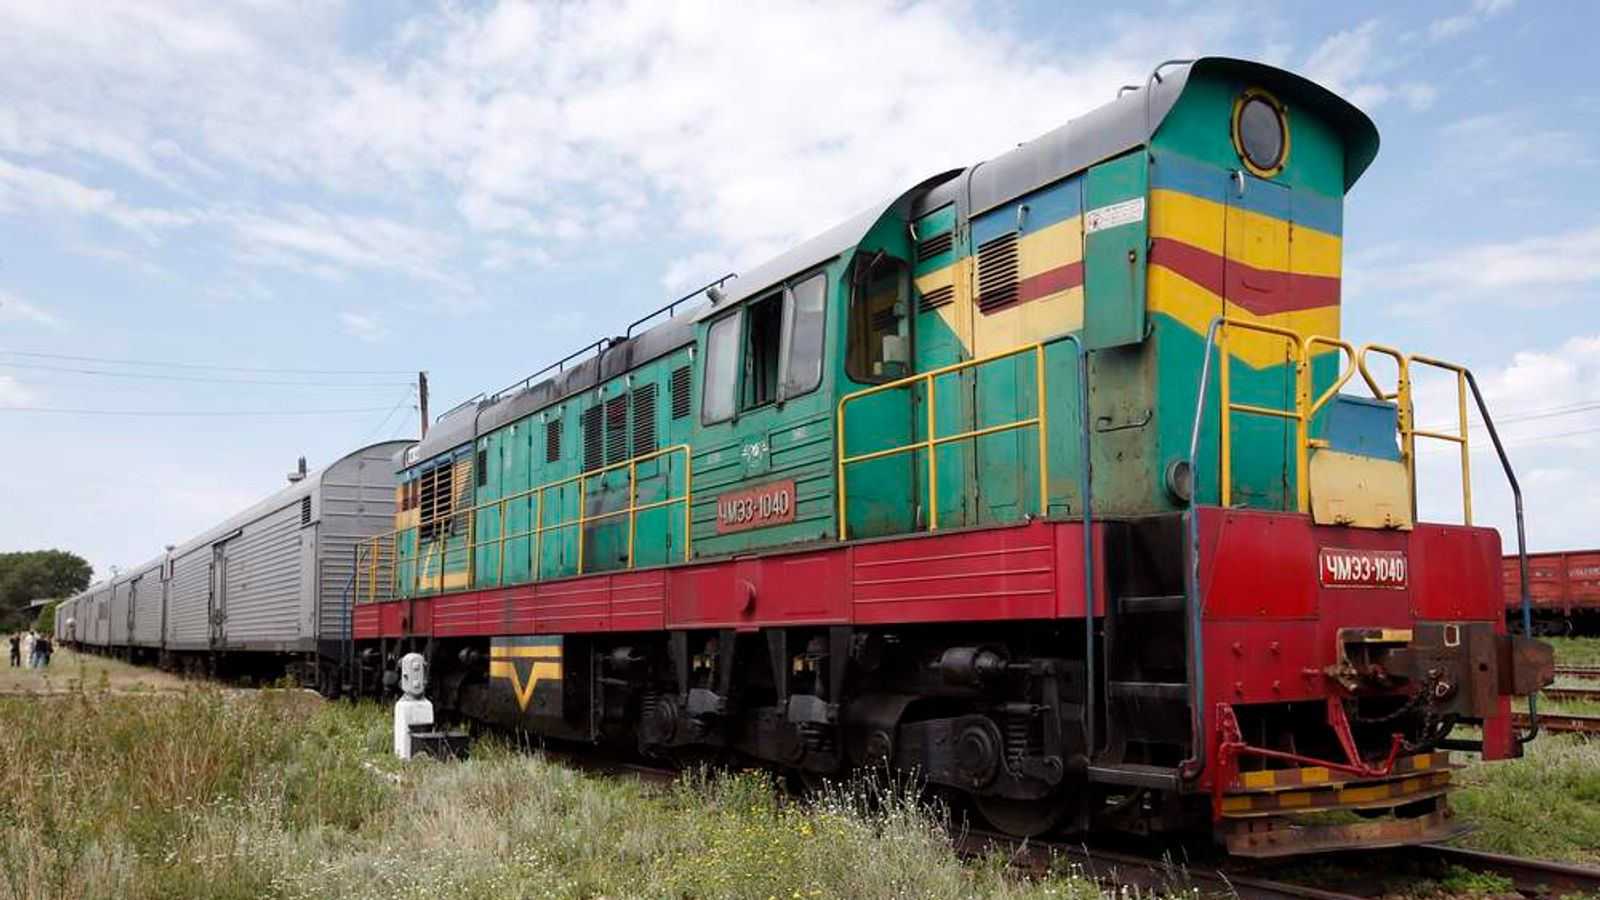 A train of refrigerator wagons, which according to employees and local residents contain bodies of passengers of the crashed Malaysia Airlines Boeing 777 plane, at a railway station in the town of Torez